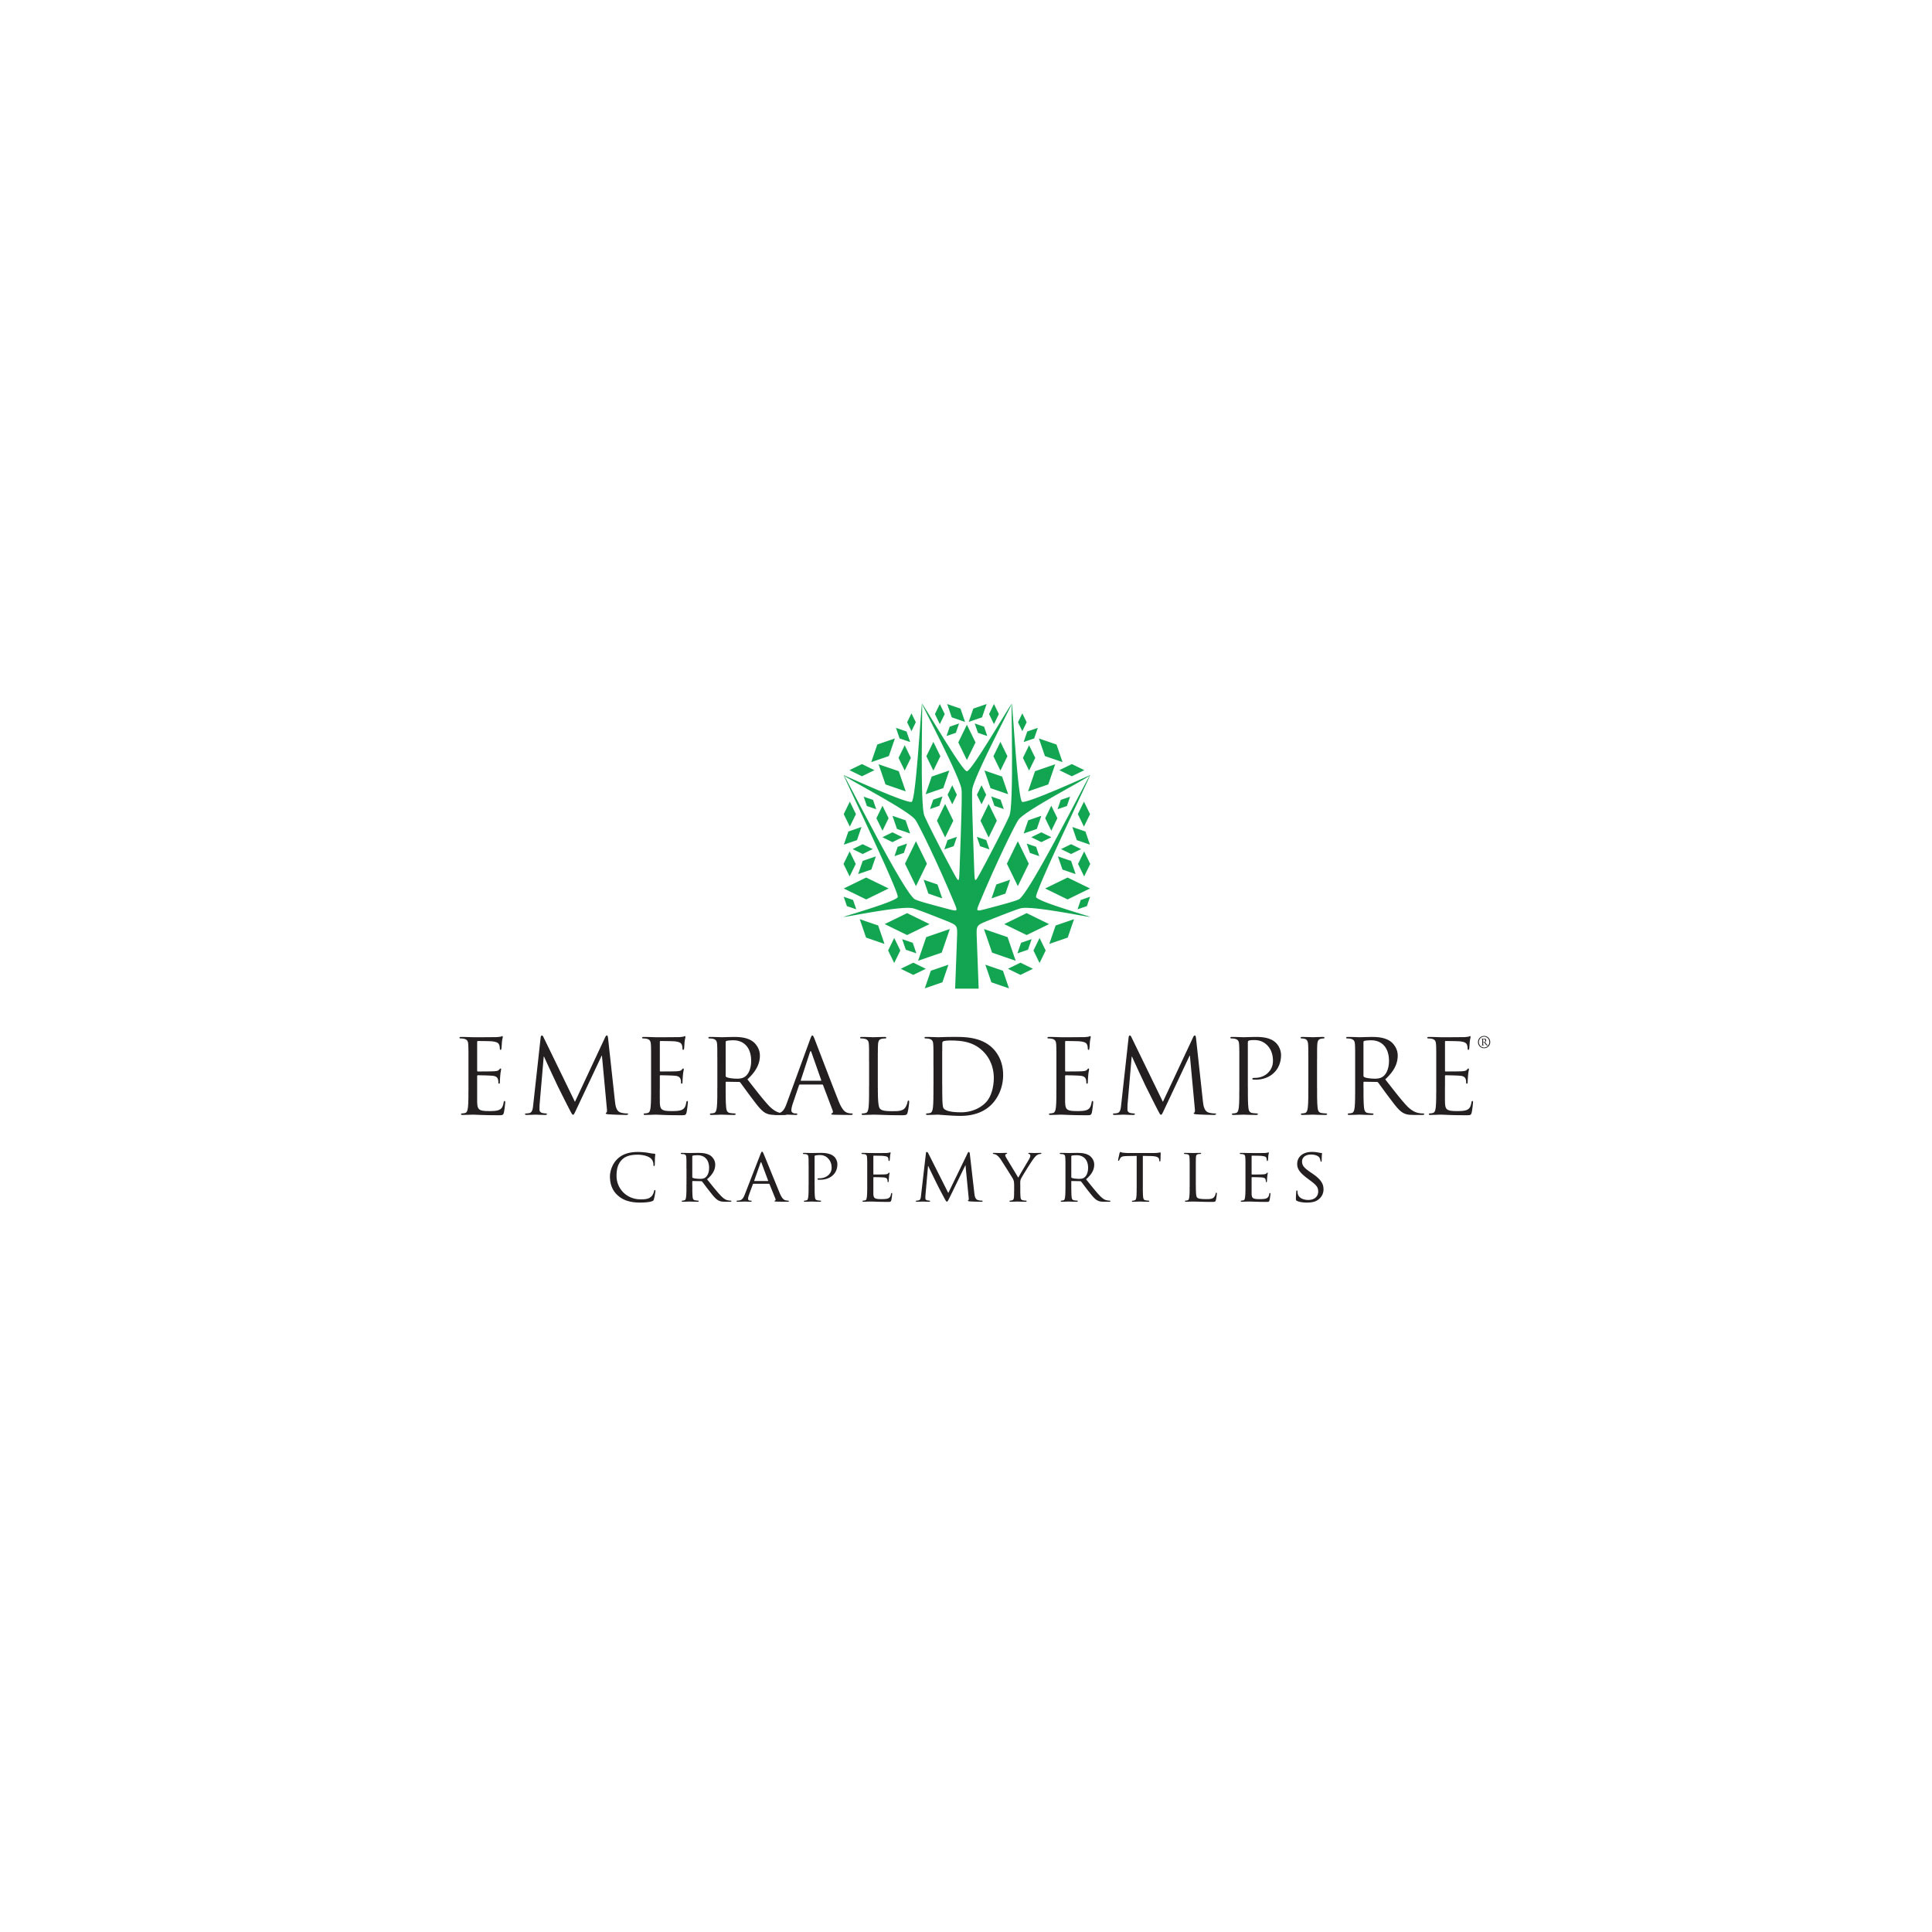 Emerald Empire Crapemyrtles